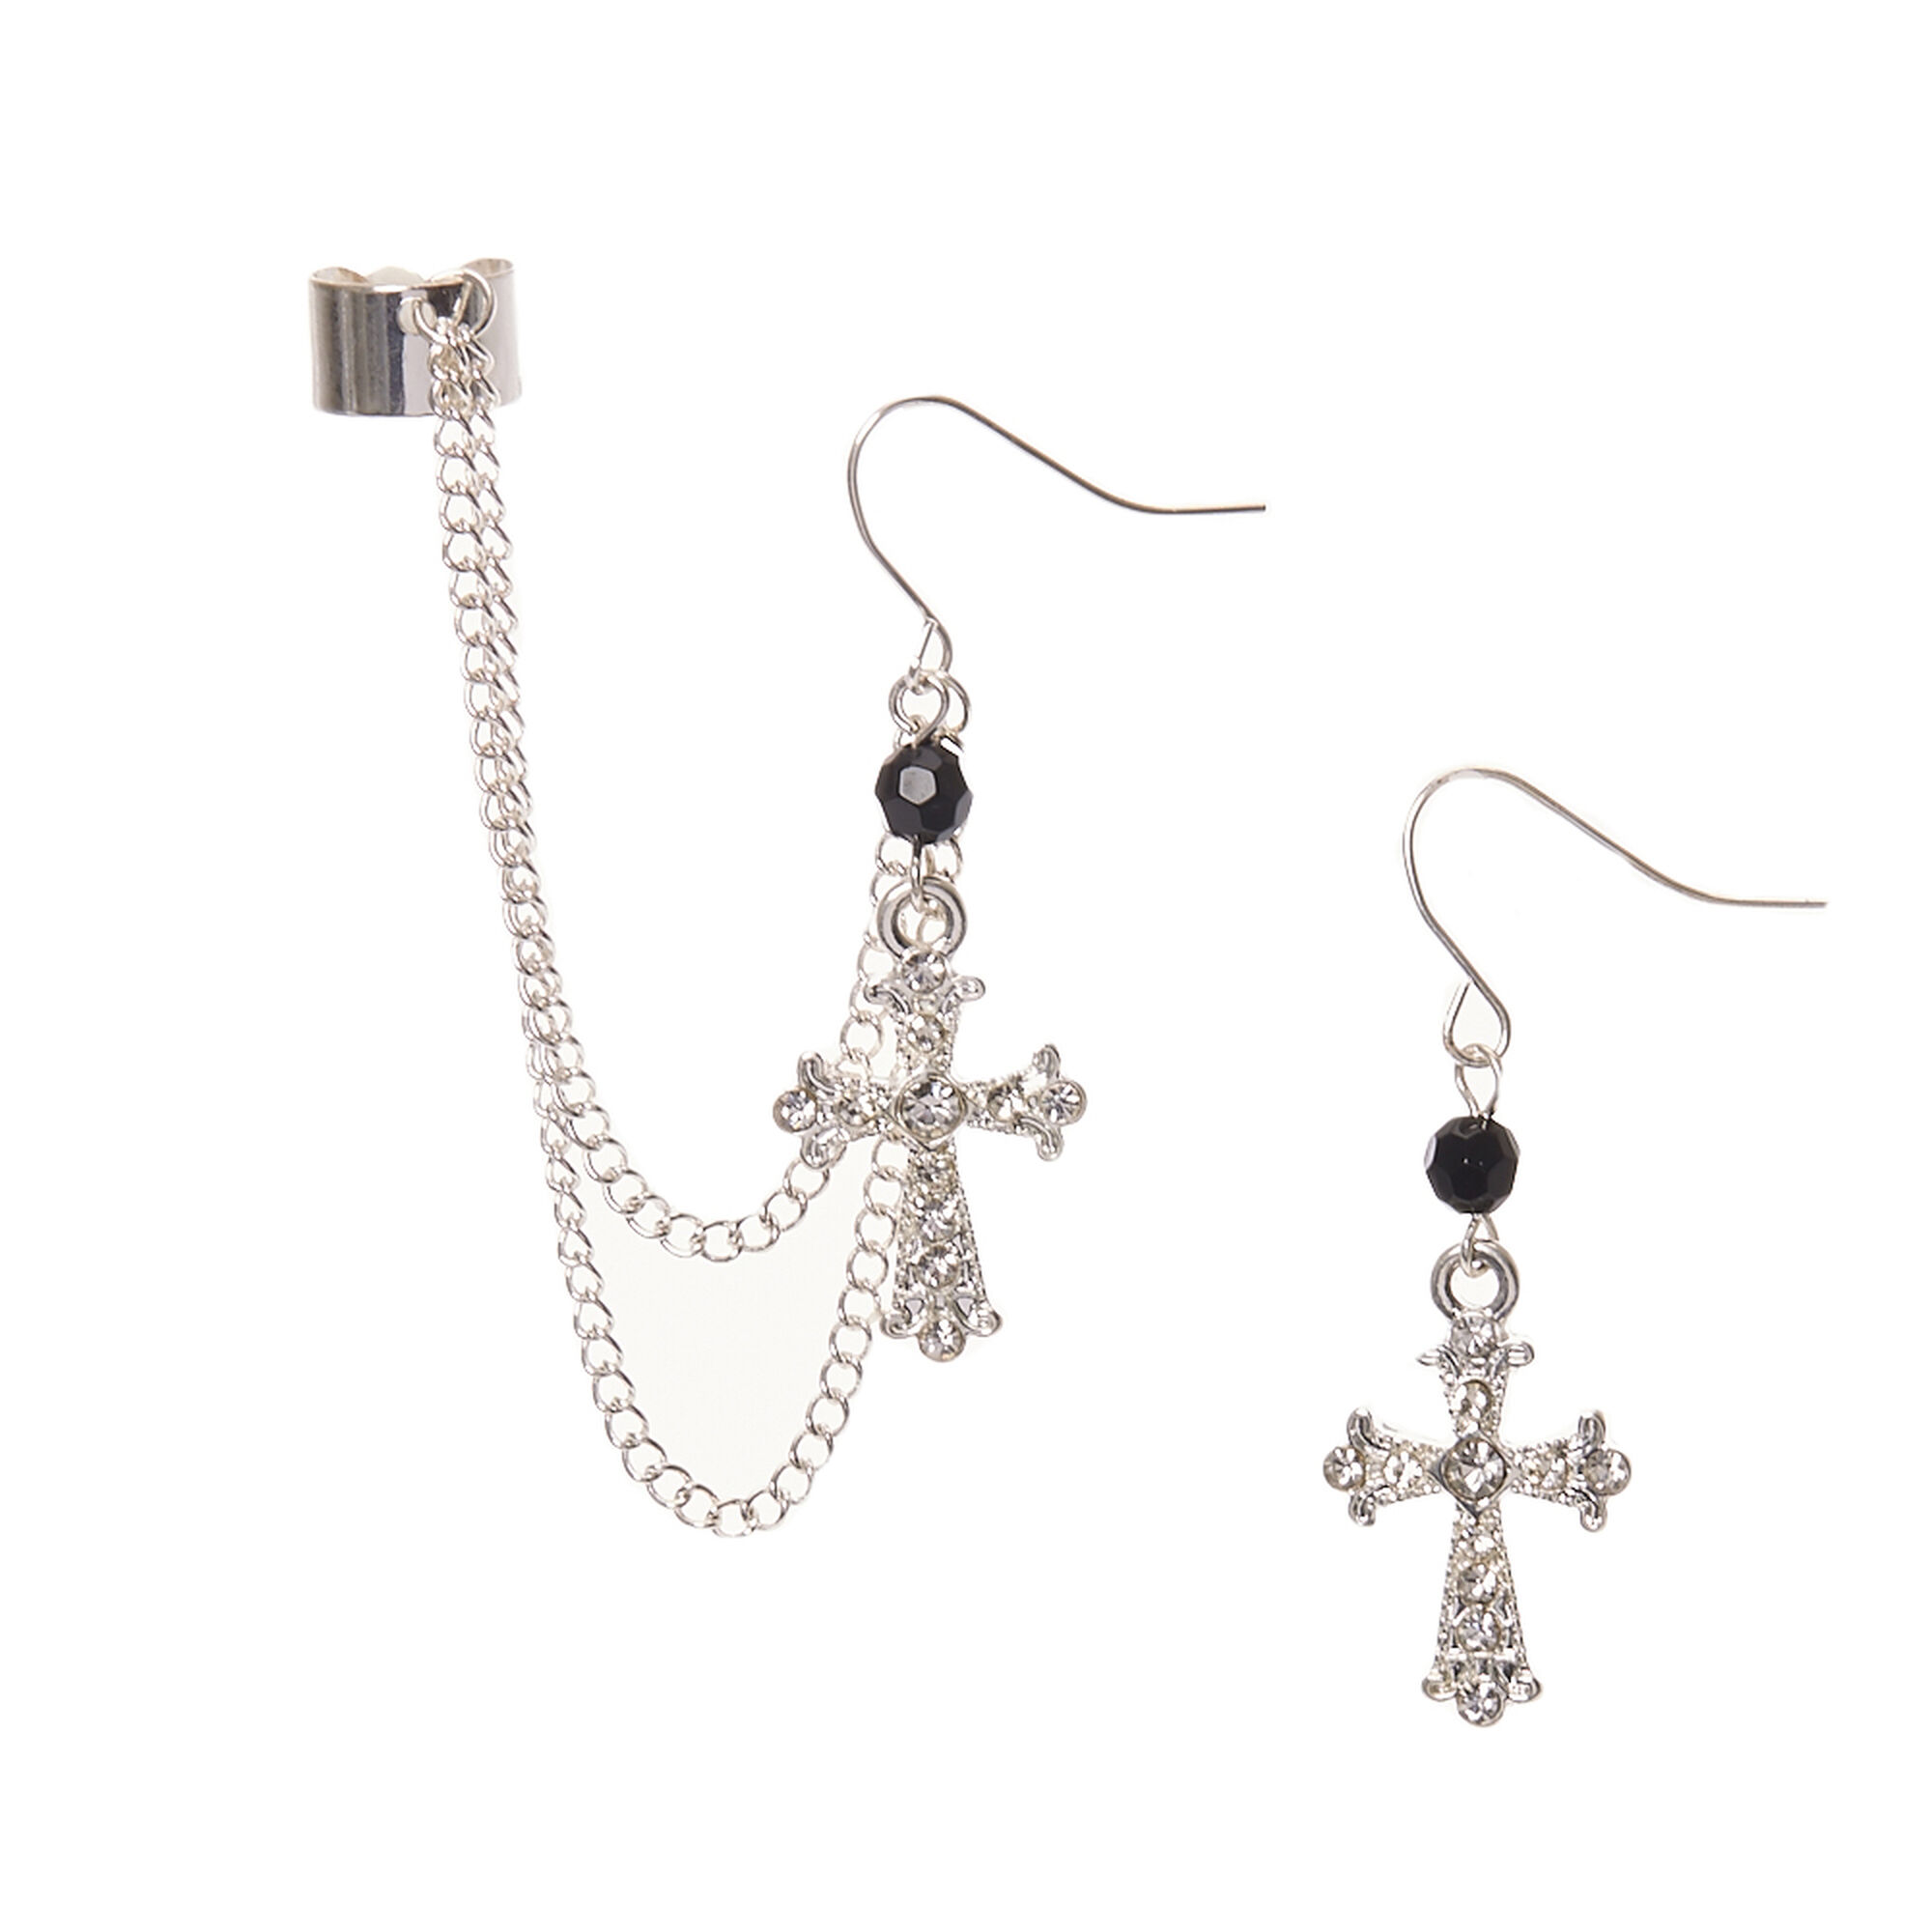 Silver Tone Gothic Cross Chain Ear Cuff And Drop Earring Set